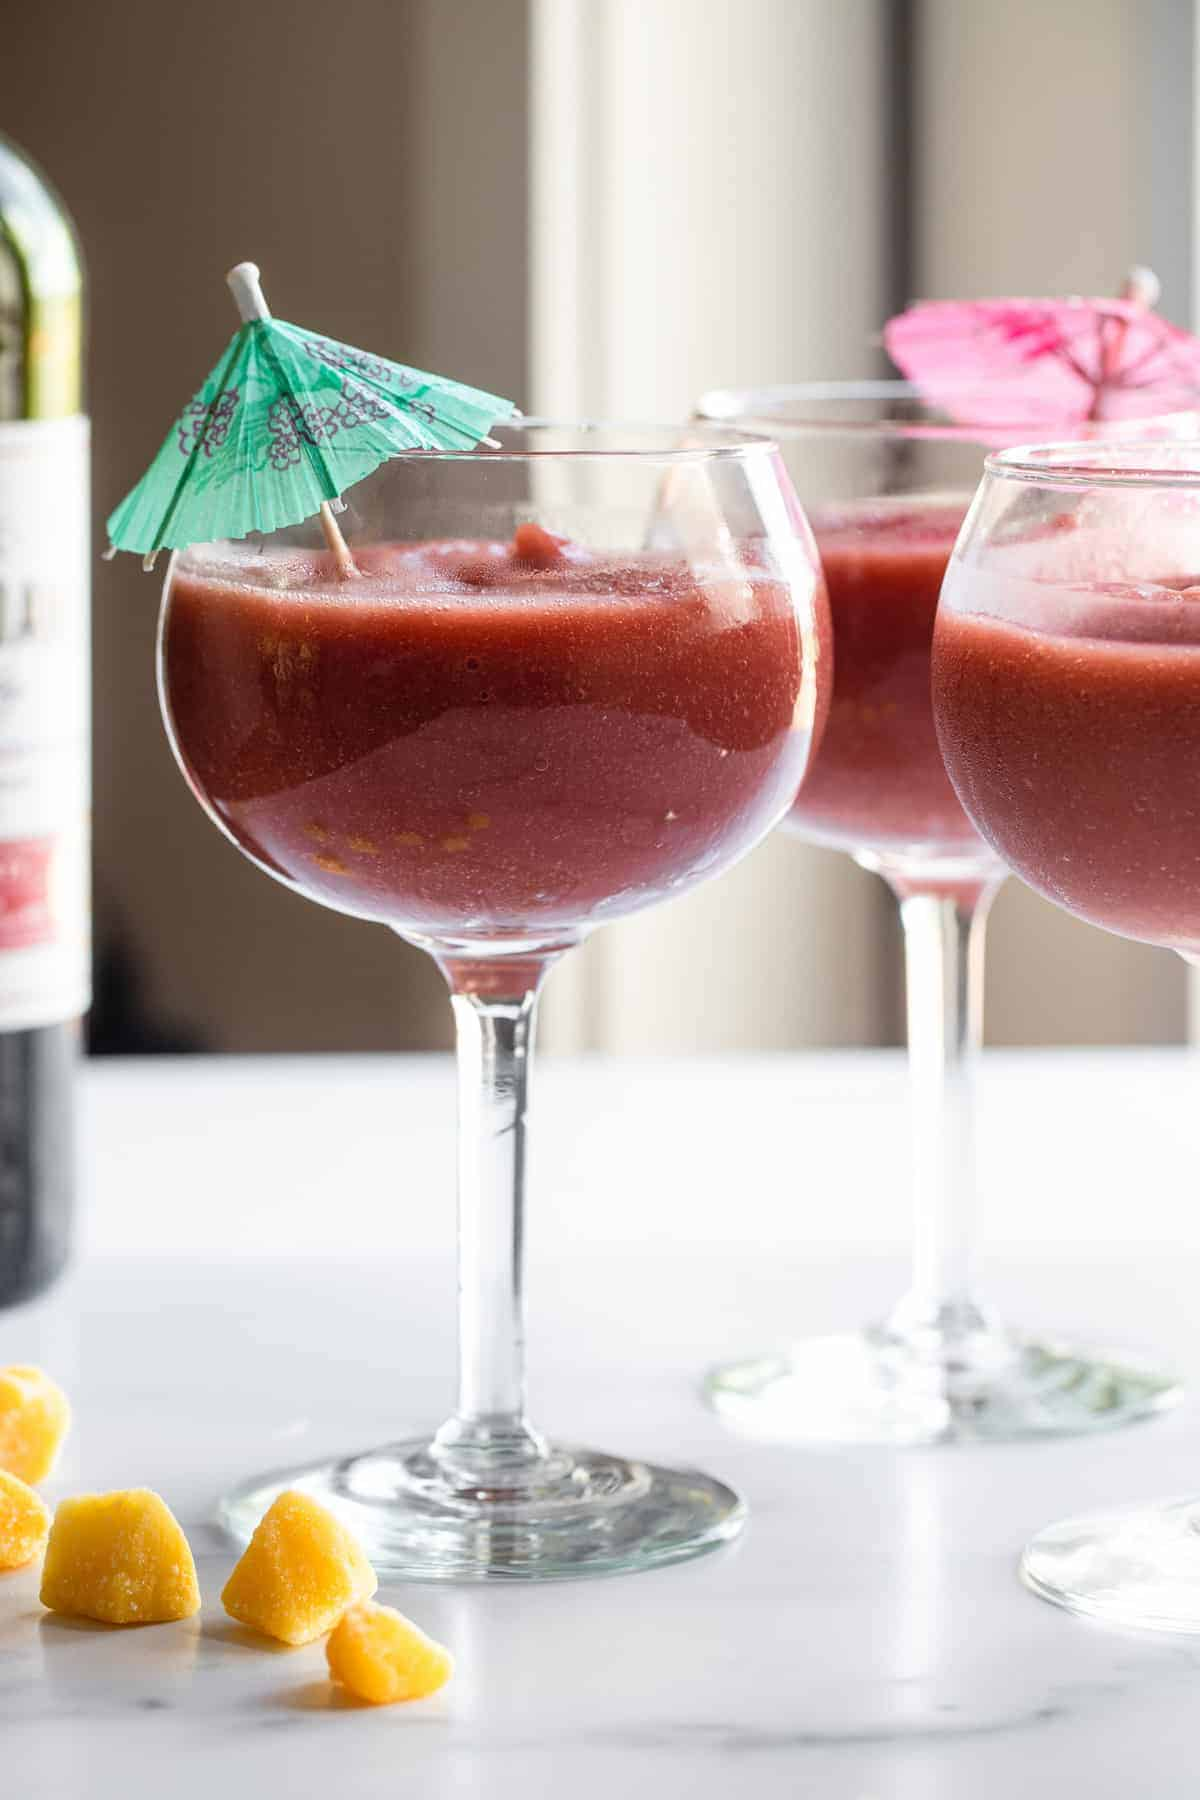 wine glass filled with frozen sangria recipe on a table